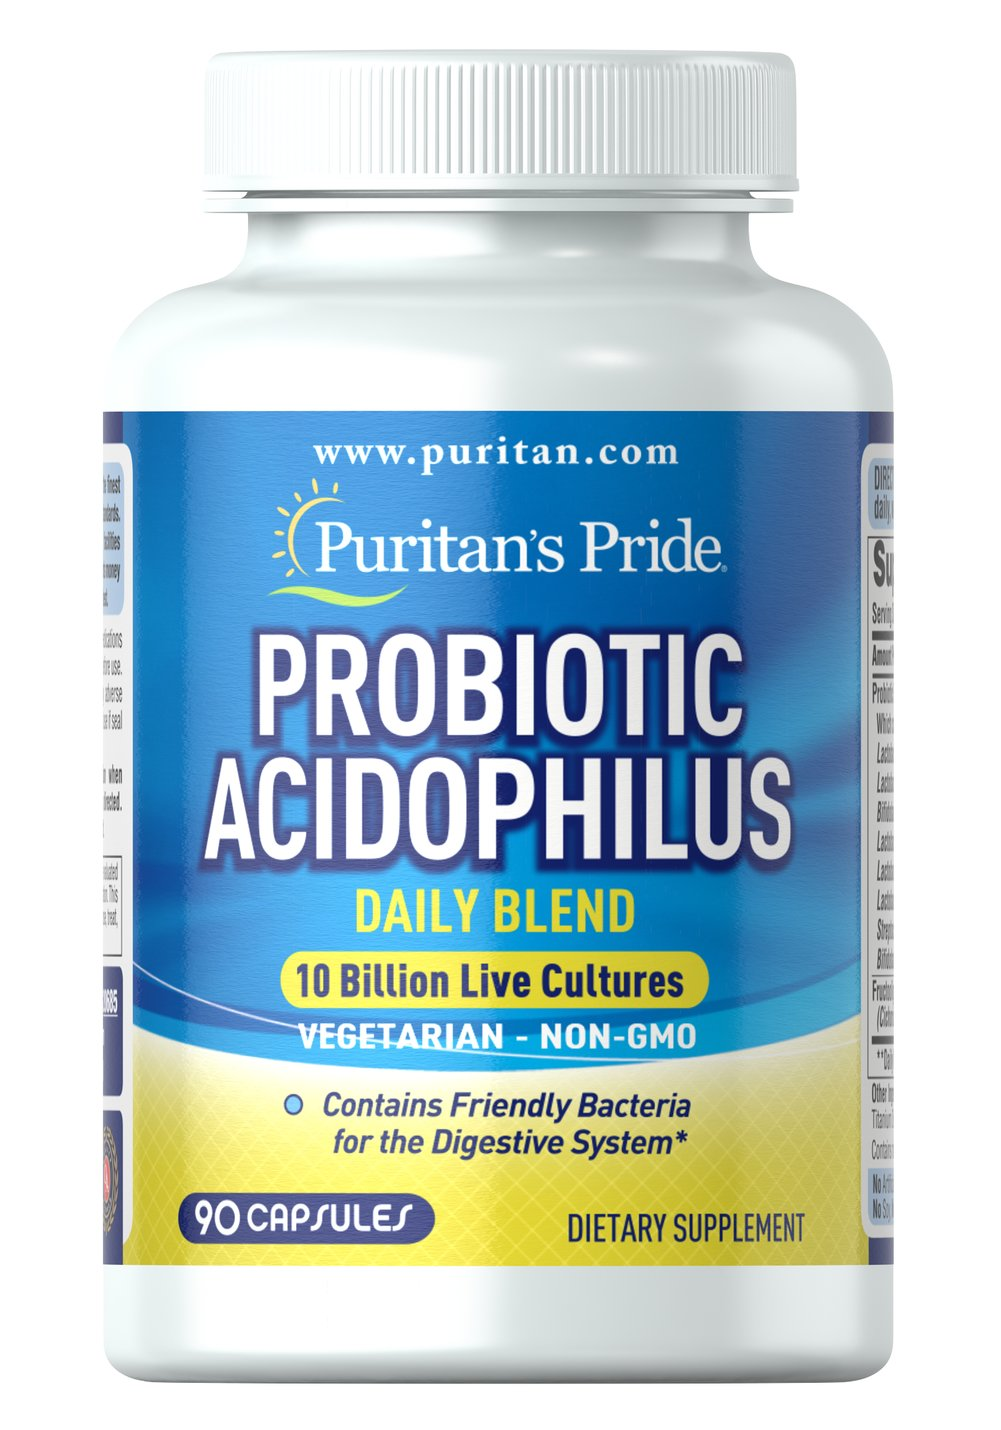 Probiotic Acidophilus Daily Blend Thumbnail Alternate Bottle View